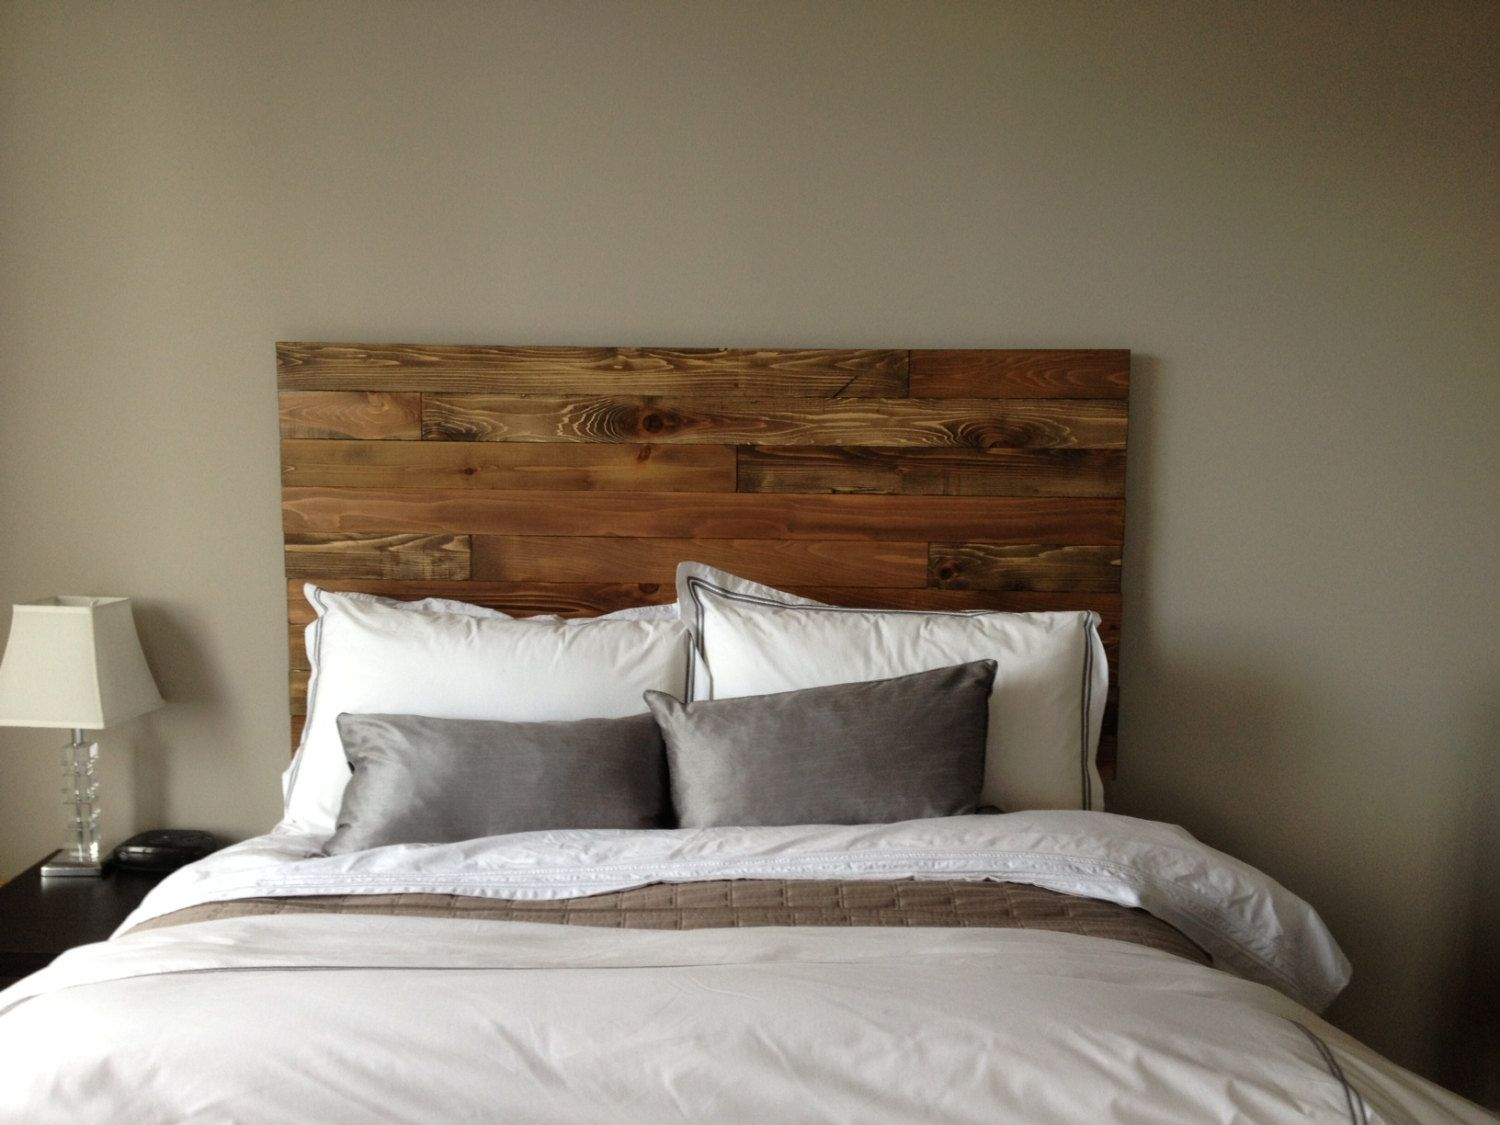 59 Incredibly Simple Rustic Décor Ideas That Can Make Your: Cedar Barn Wood Style Headboard (KING SIZE)